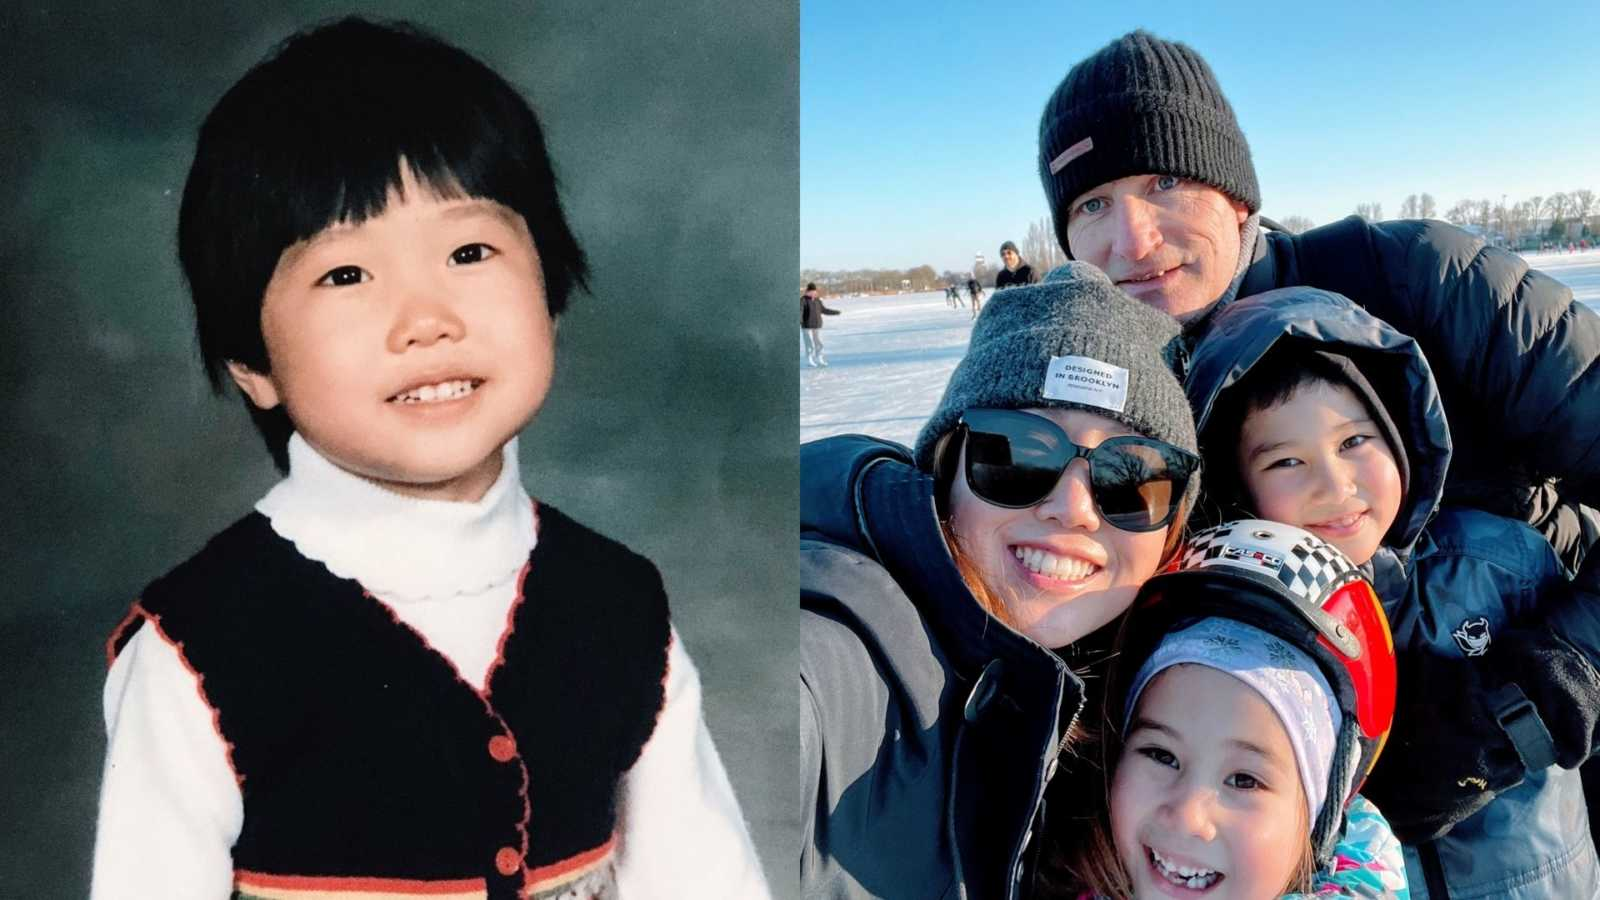 On the left a little girl smiles for a school picture and on the right a family of four all smile for a picture during a ski trip